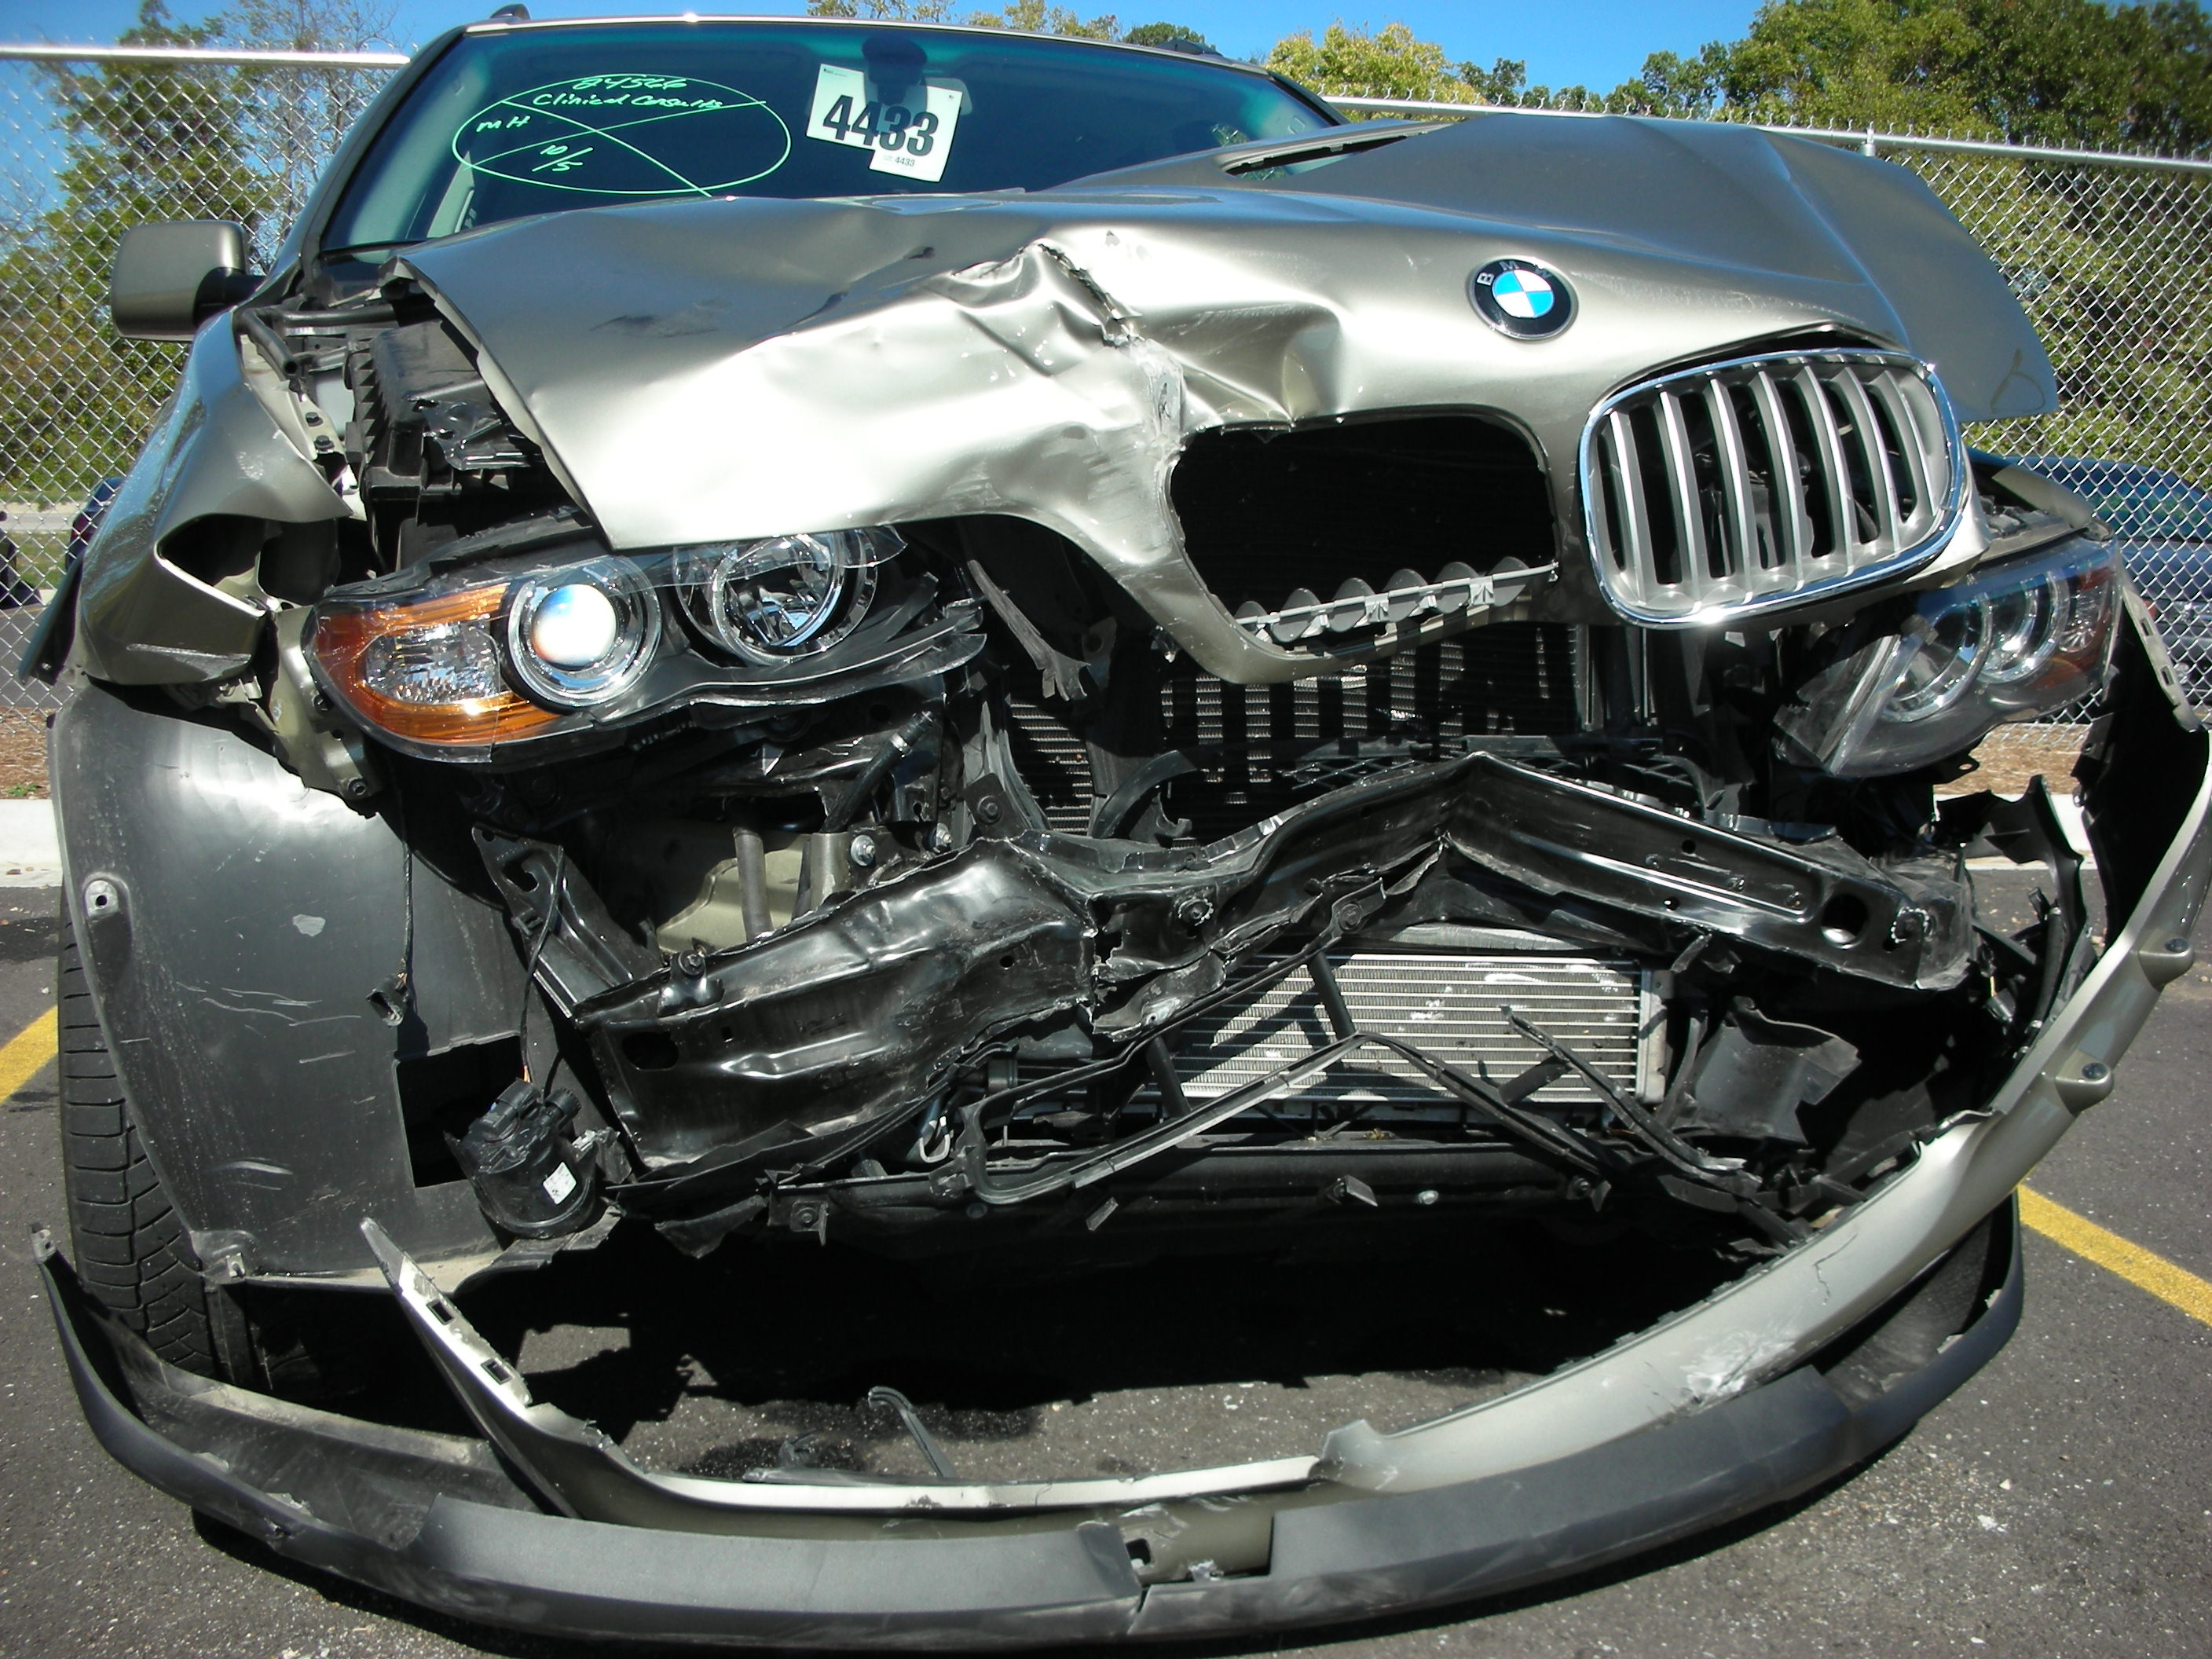 Wrecked X5 Bmw M5 Forum And M6 Forums